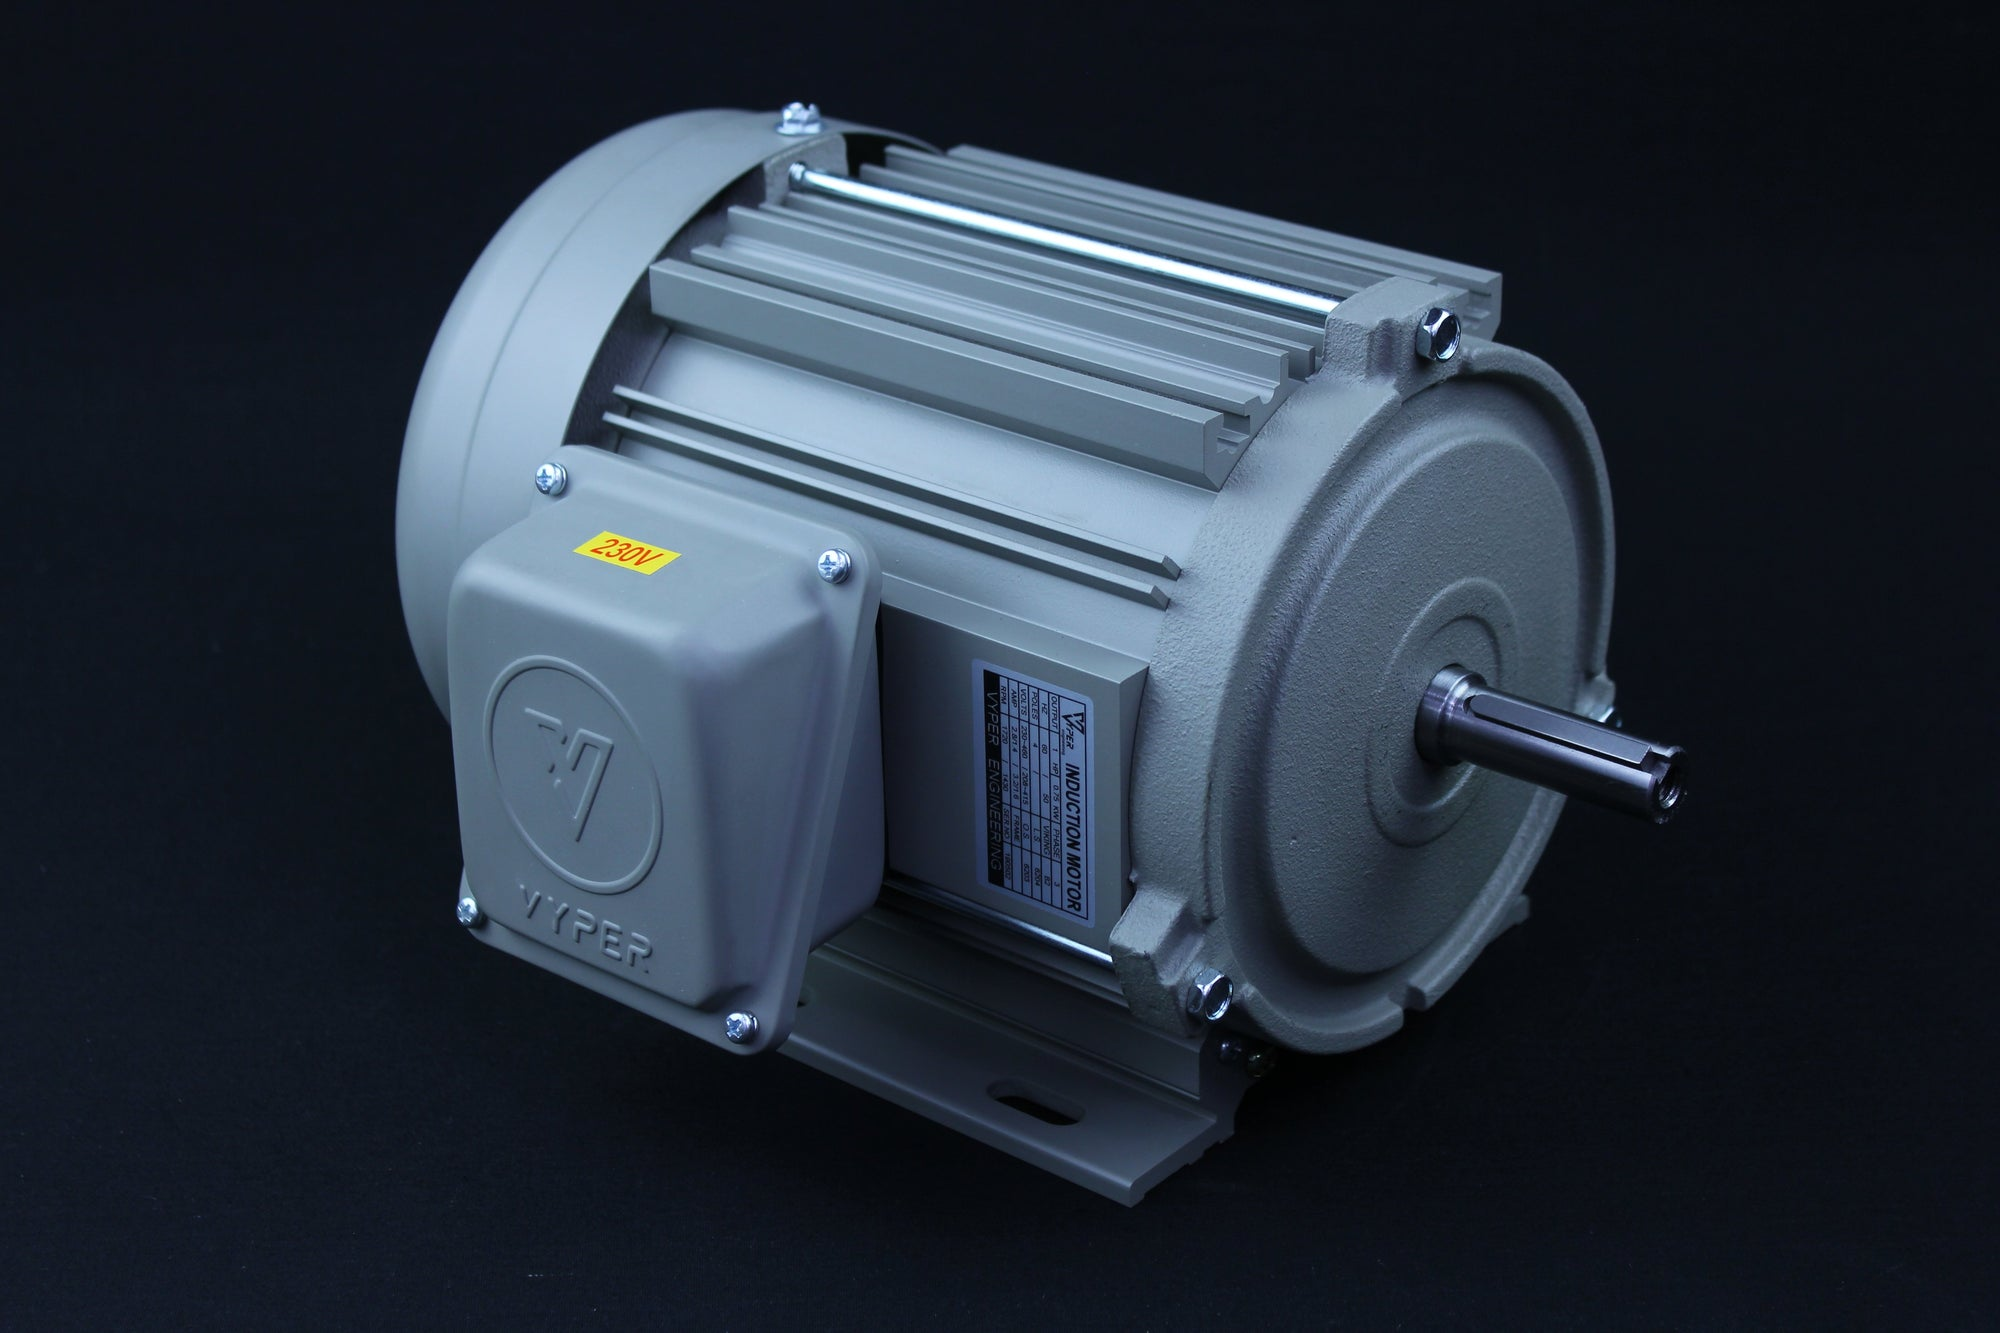 Three Phase - 1/2HP - 208-230/460V - 3000/3600RPM - 50/60HZ - 56 - Foot - IE1